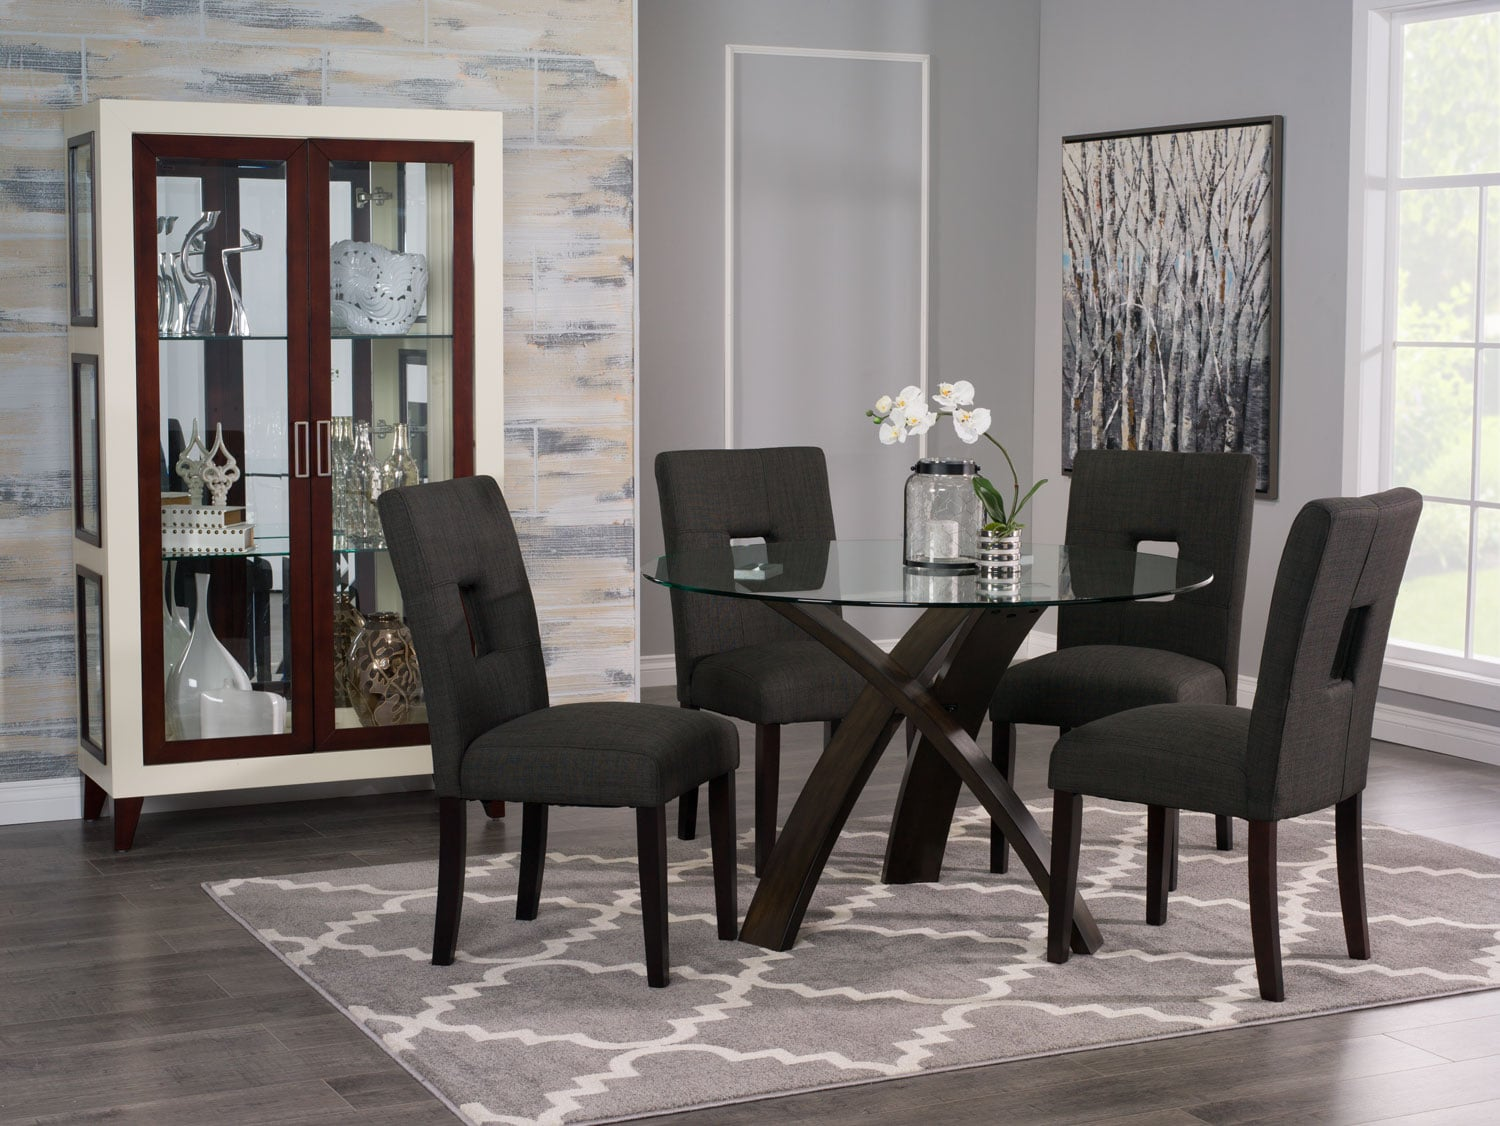 Dining Room Furniture - Skye 5-Piece Dining Package with McKena Chairs